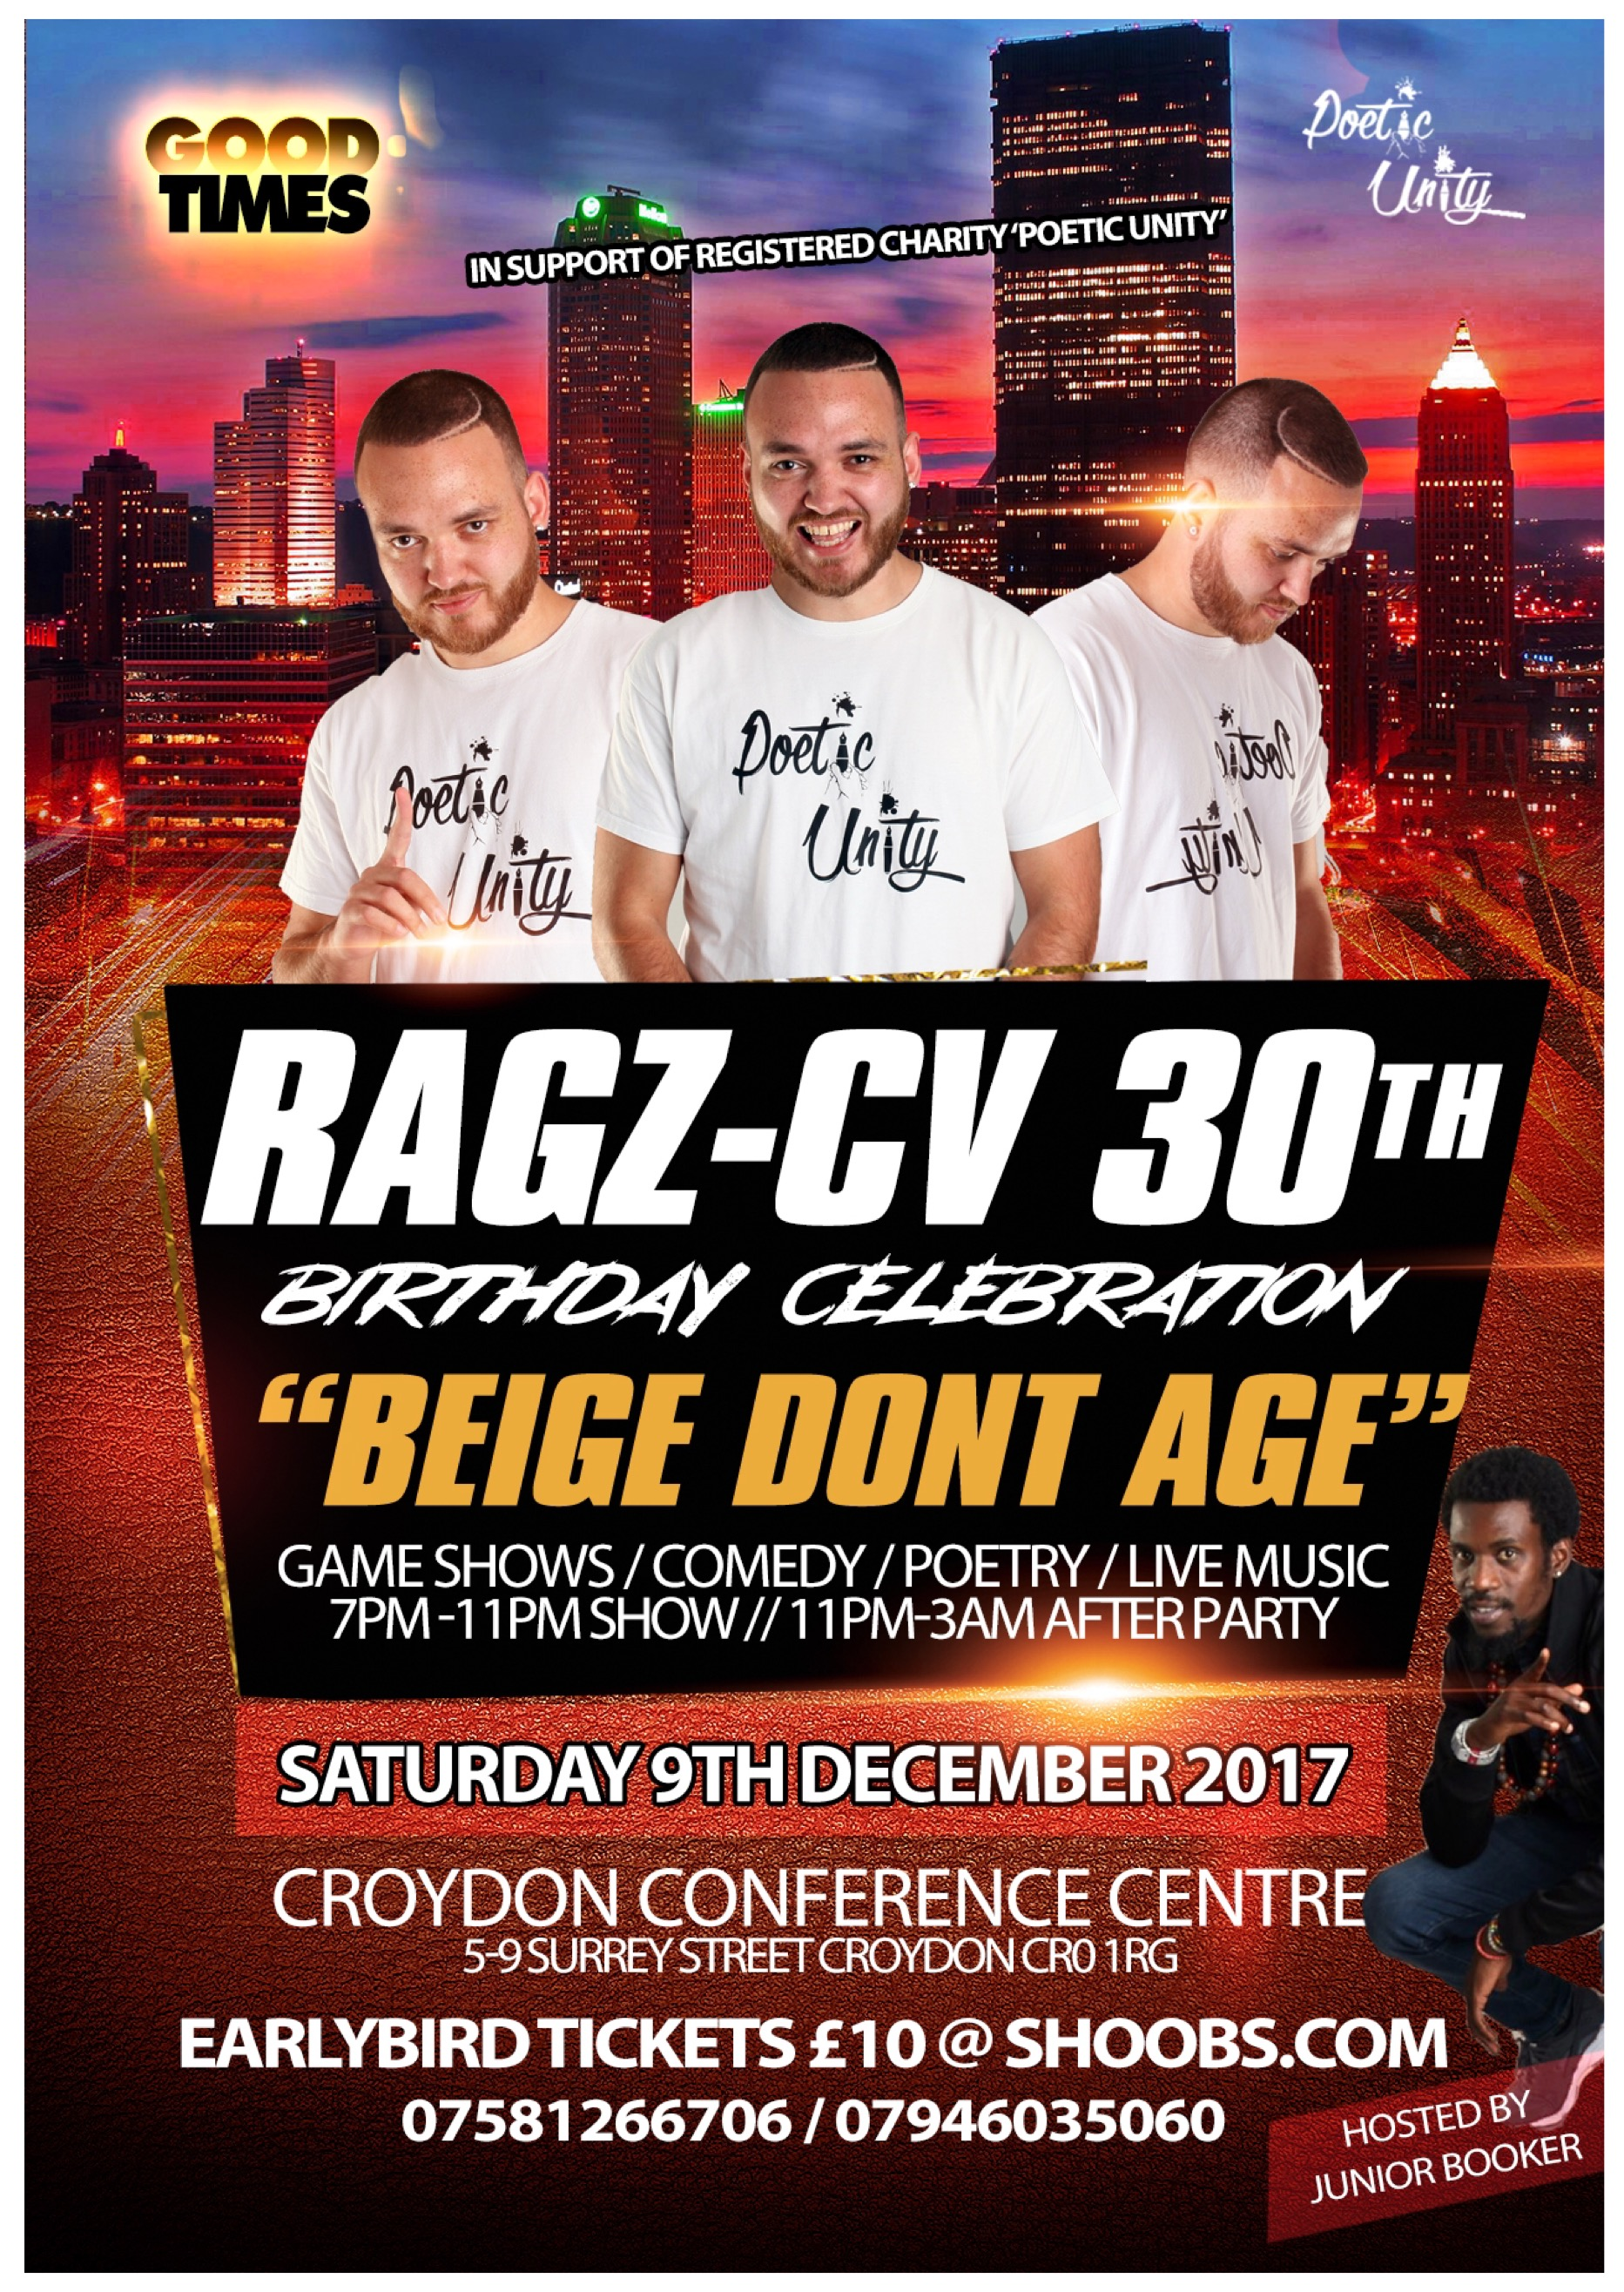 Ragz-CV 30th Birthday Show + After Party